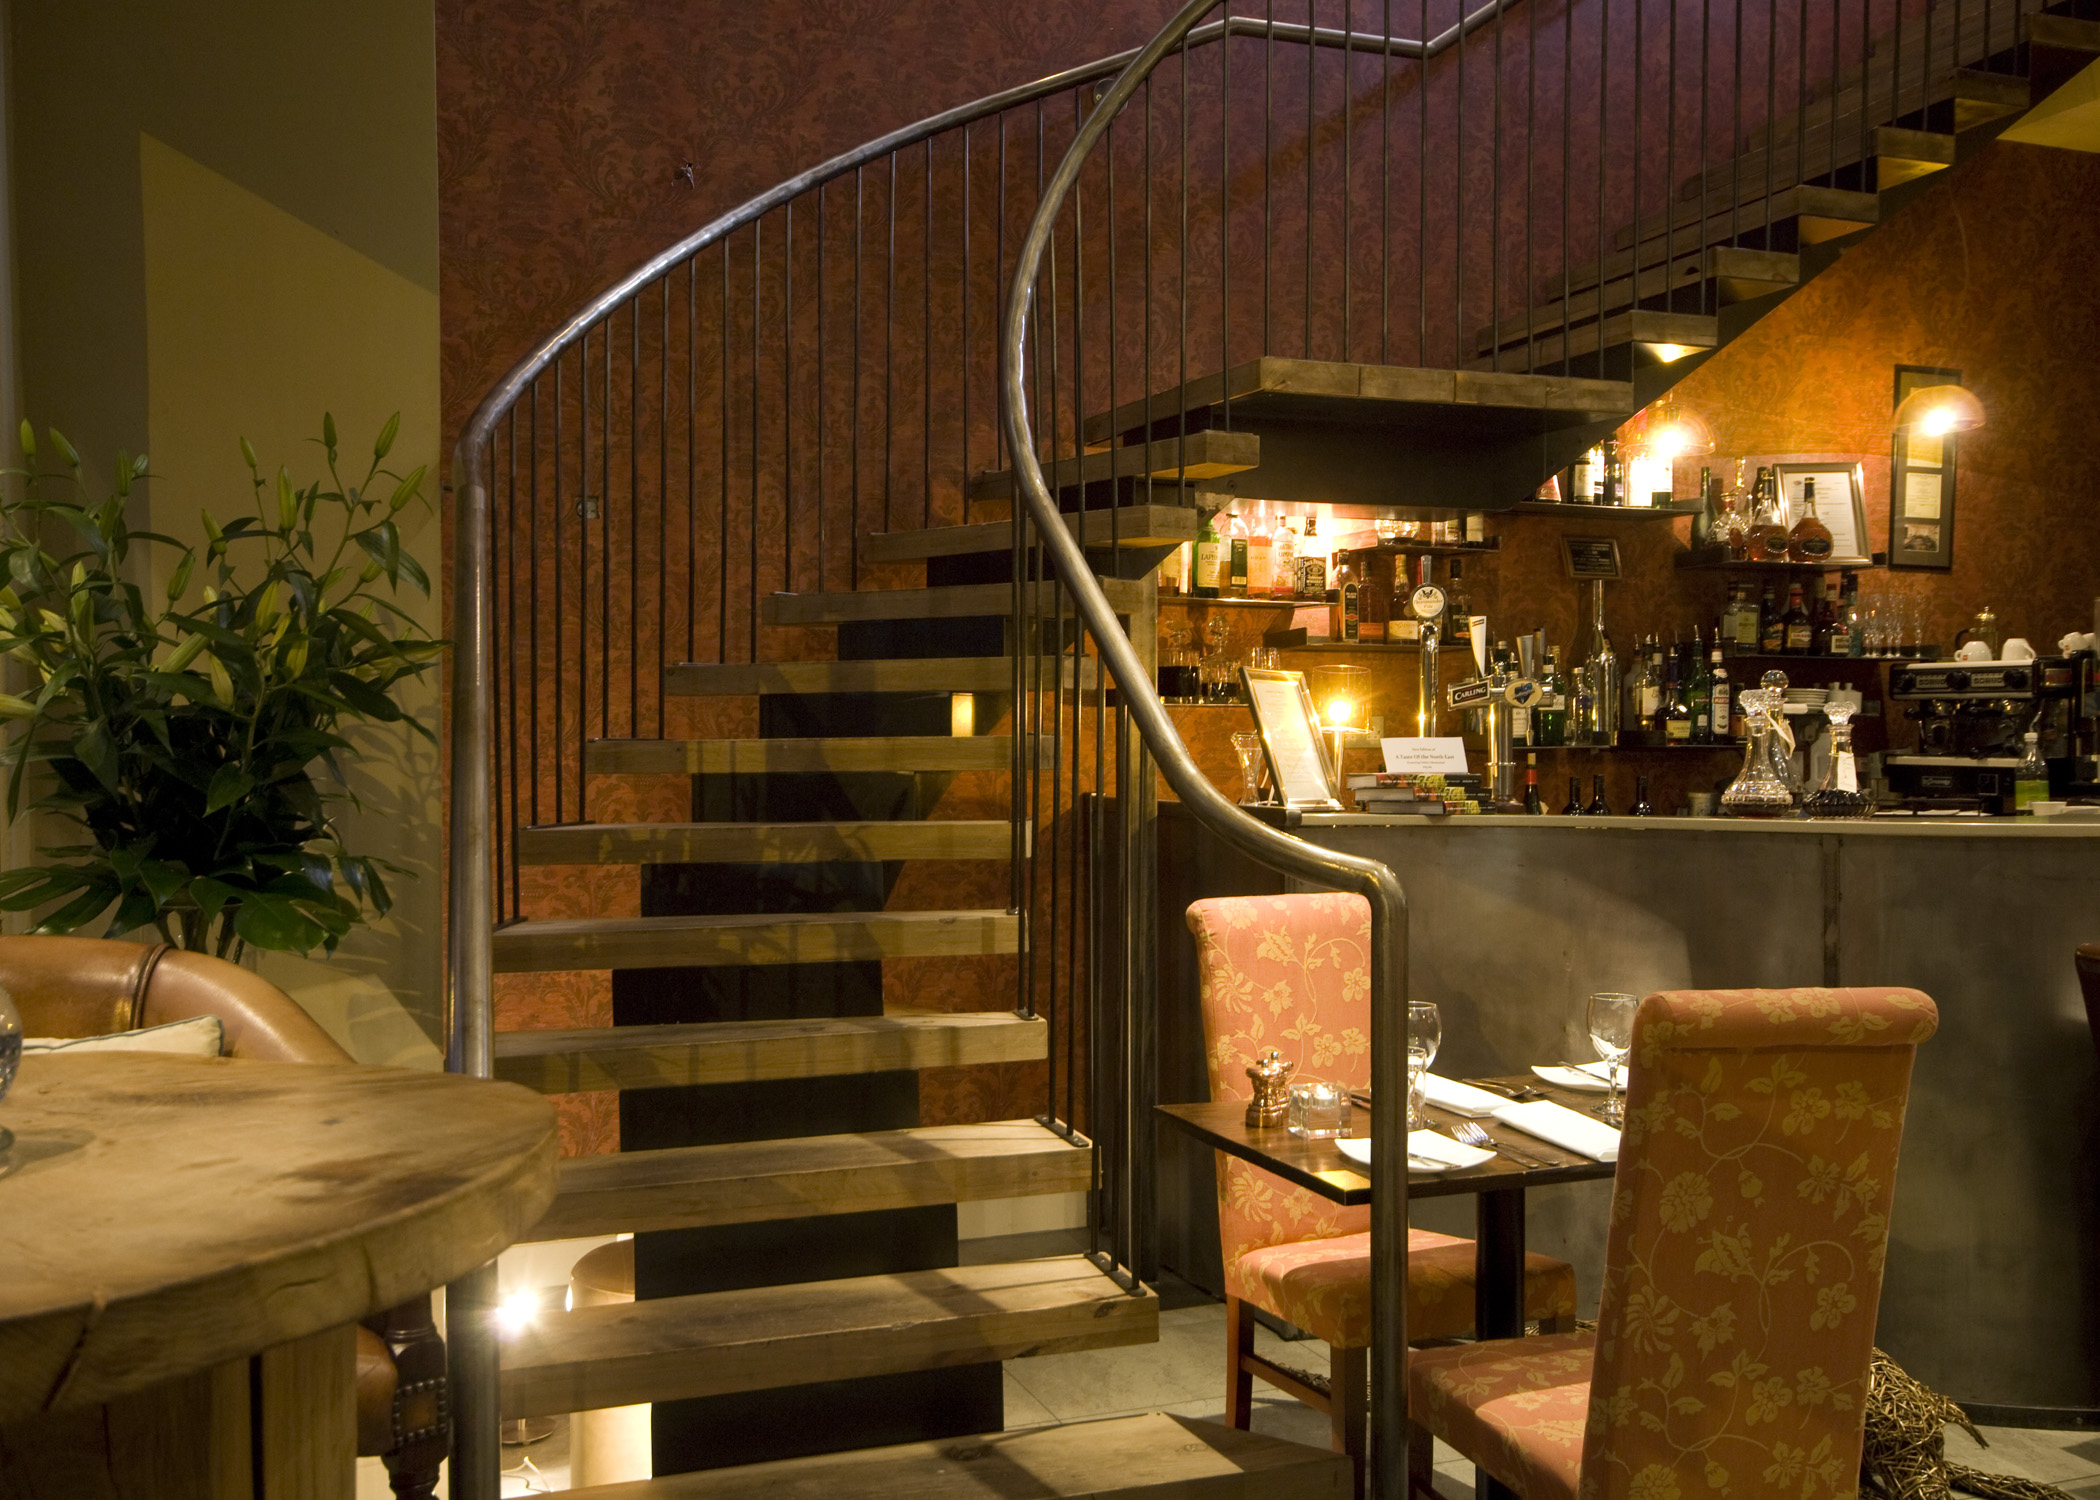 Greens Restaurant stair design